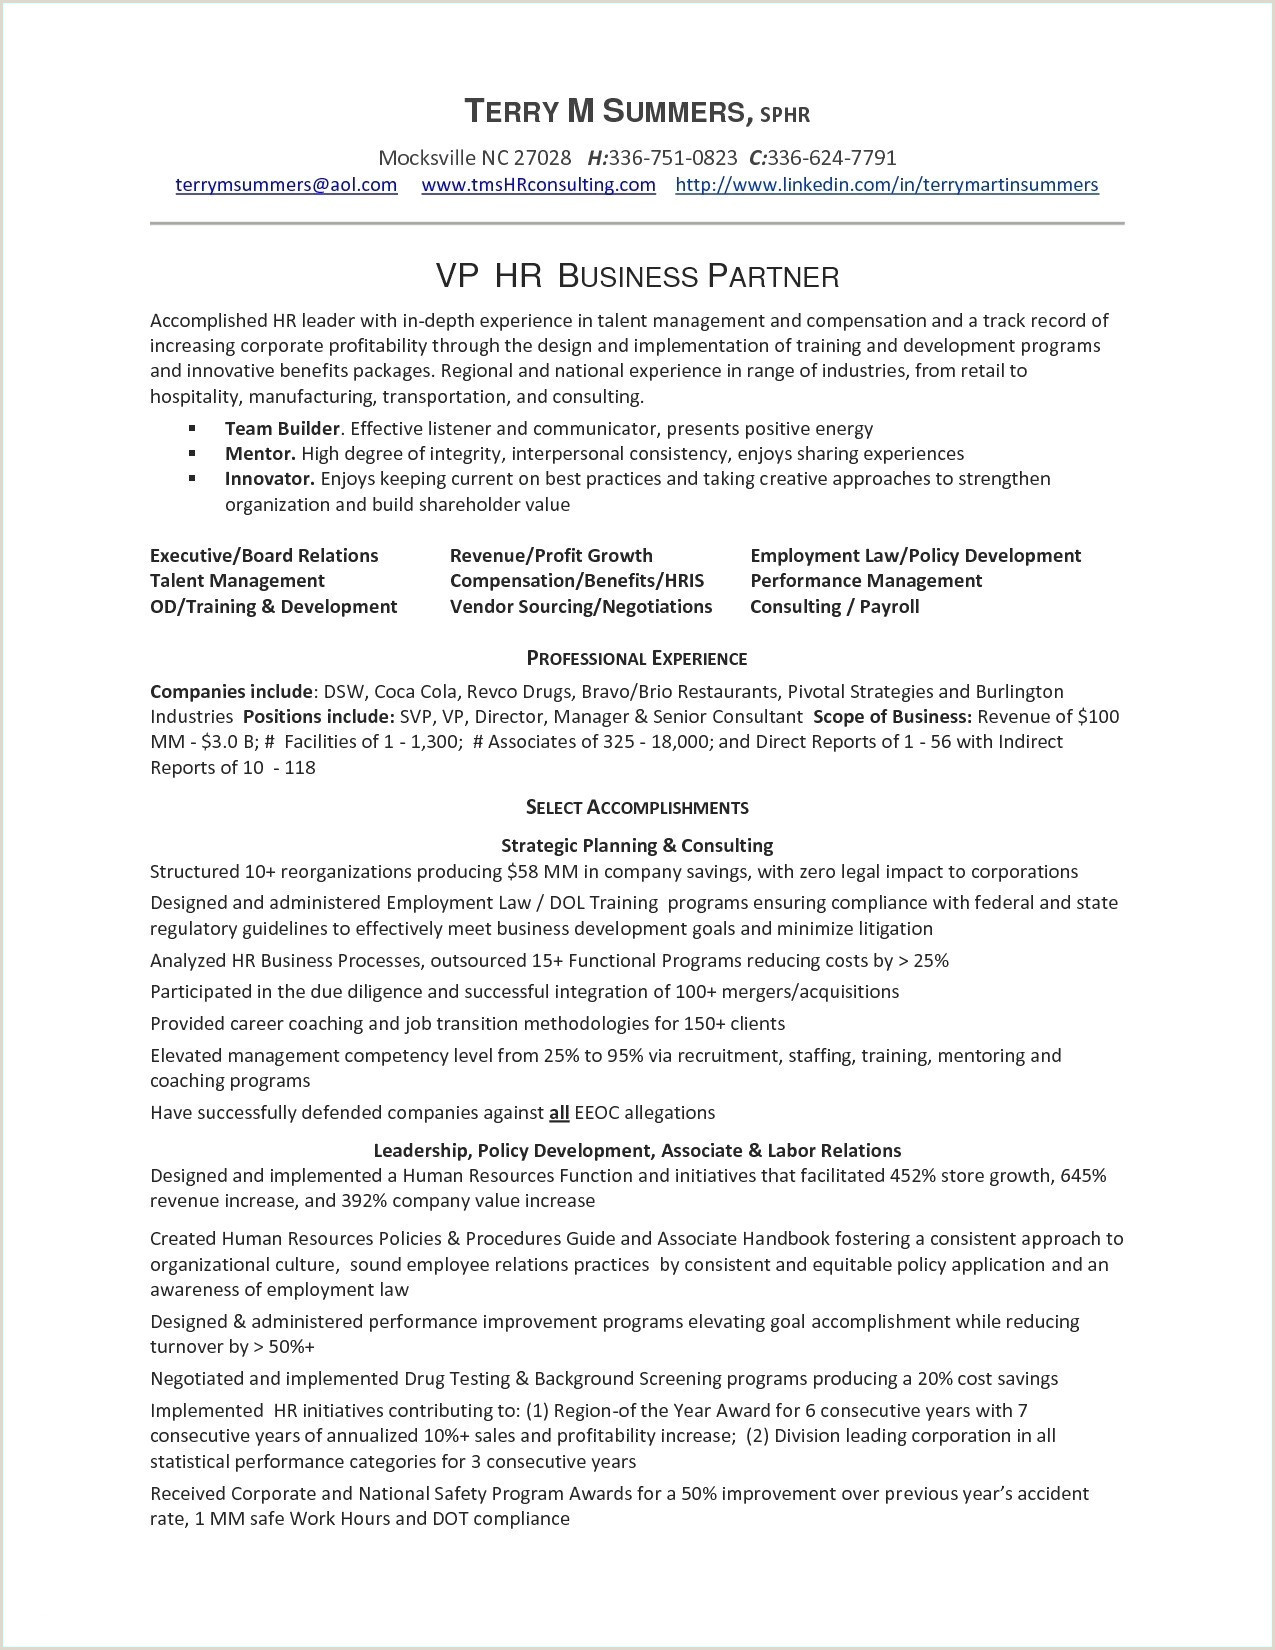 Cv for Students Part Time Job Parttime Job Resume Sample Job Part Time New 69 Fresh Part